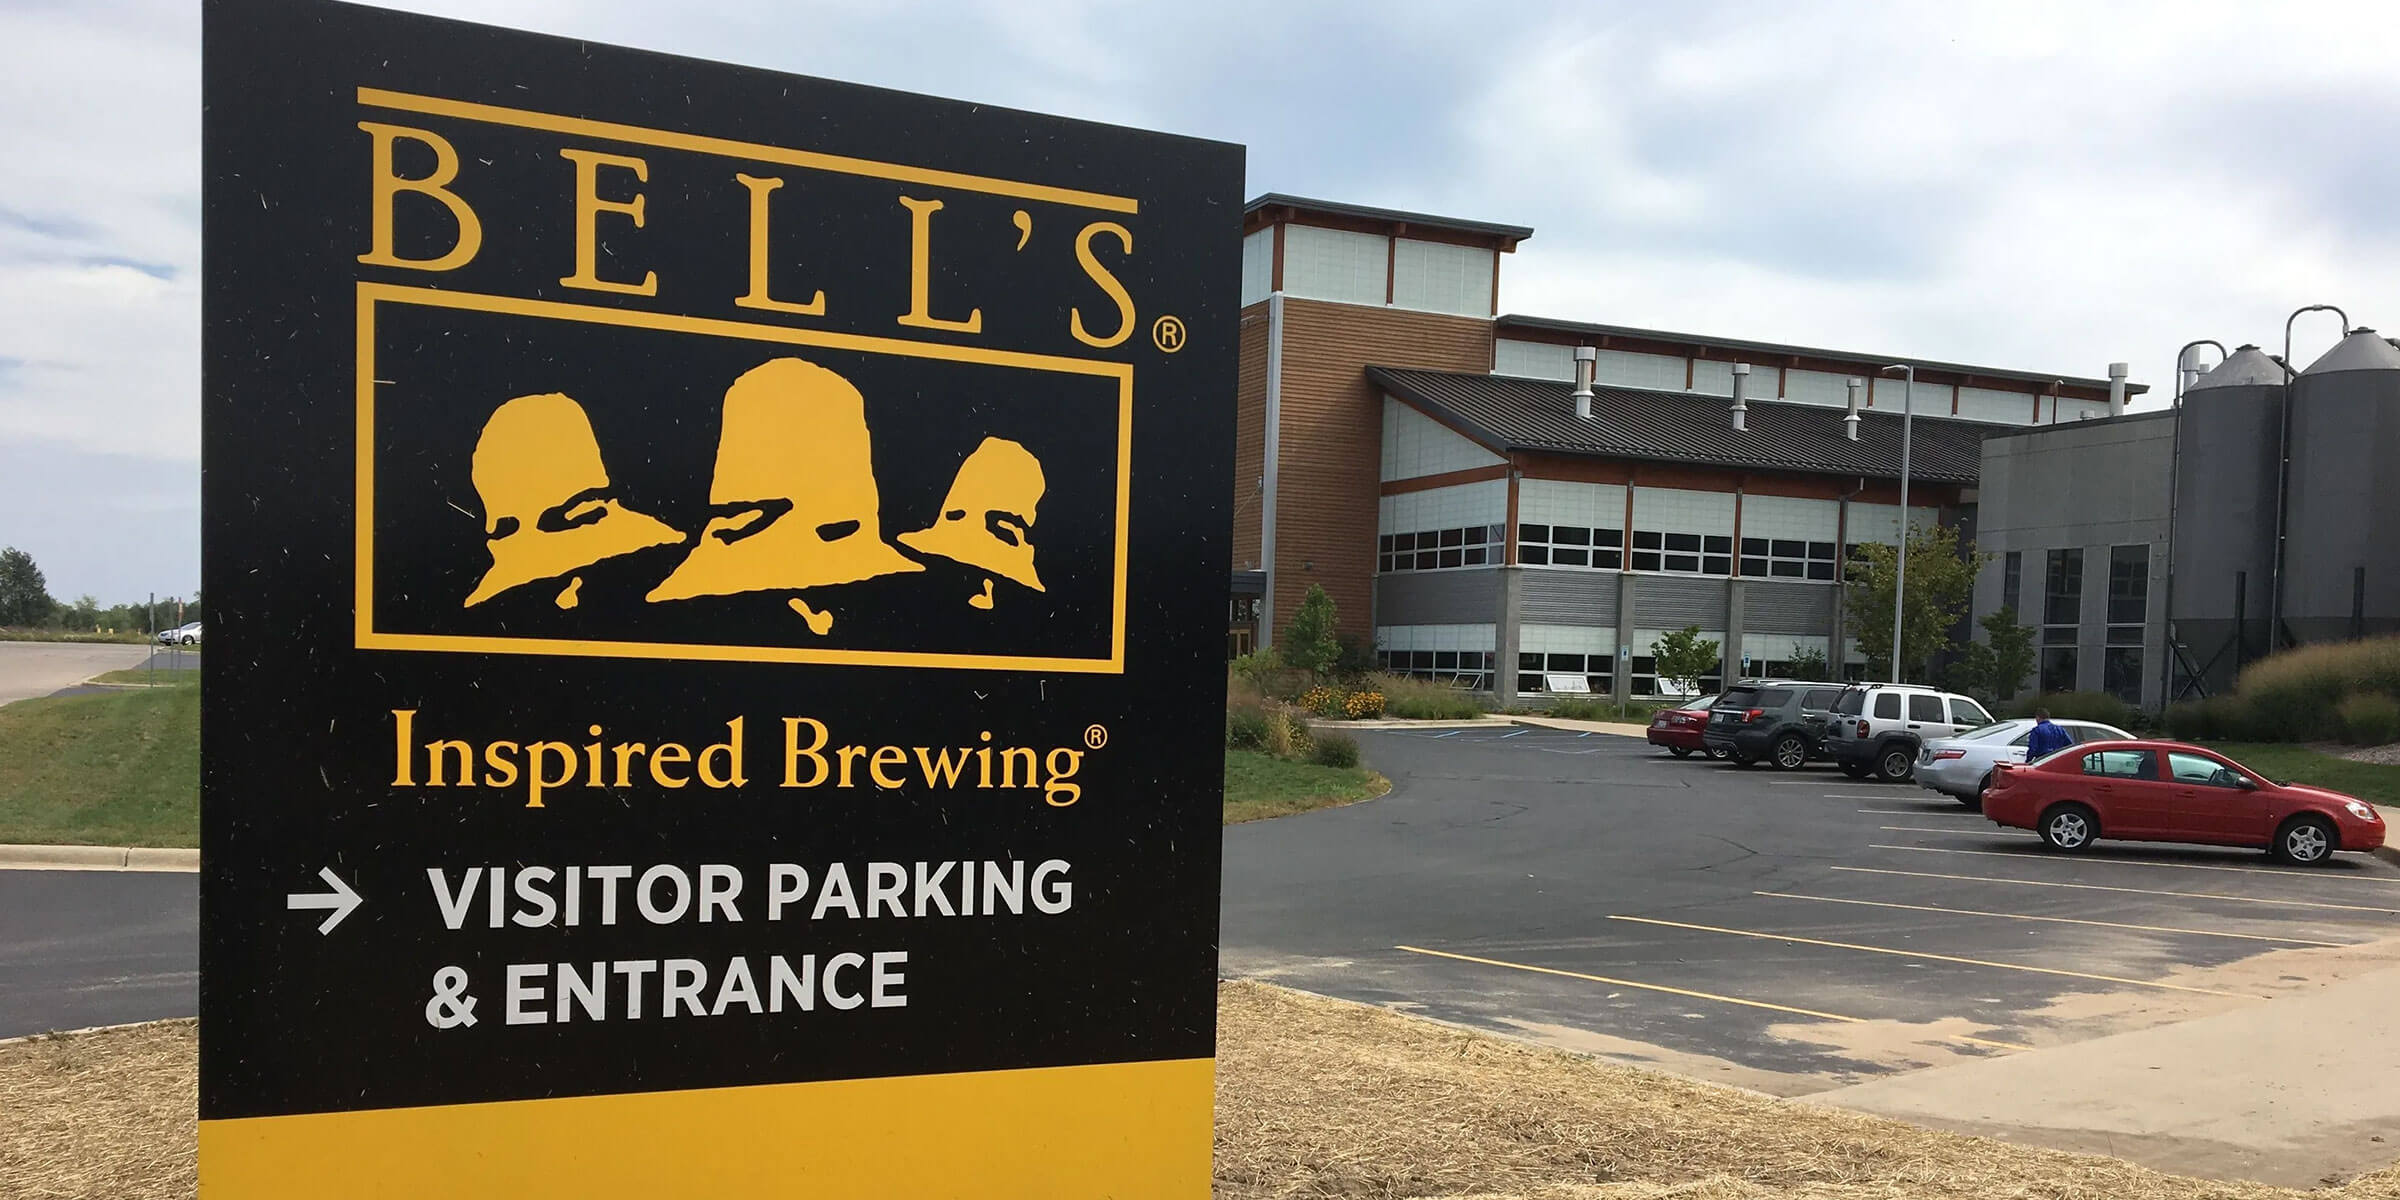 Signage posted outside the entrance to the Bell's Brewery, Inc. production brewery in Comstock, Michigan